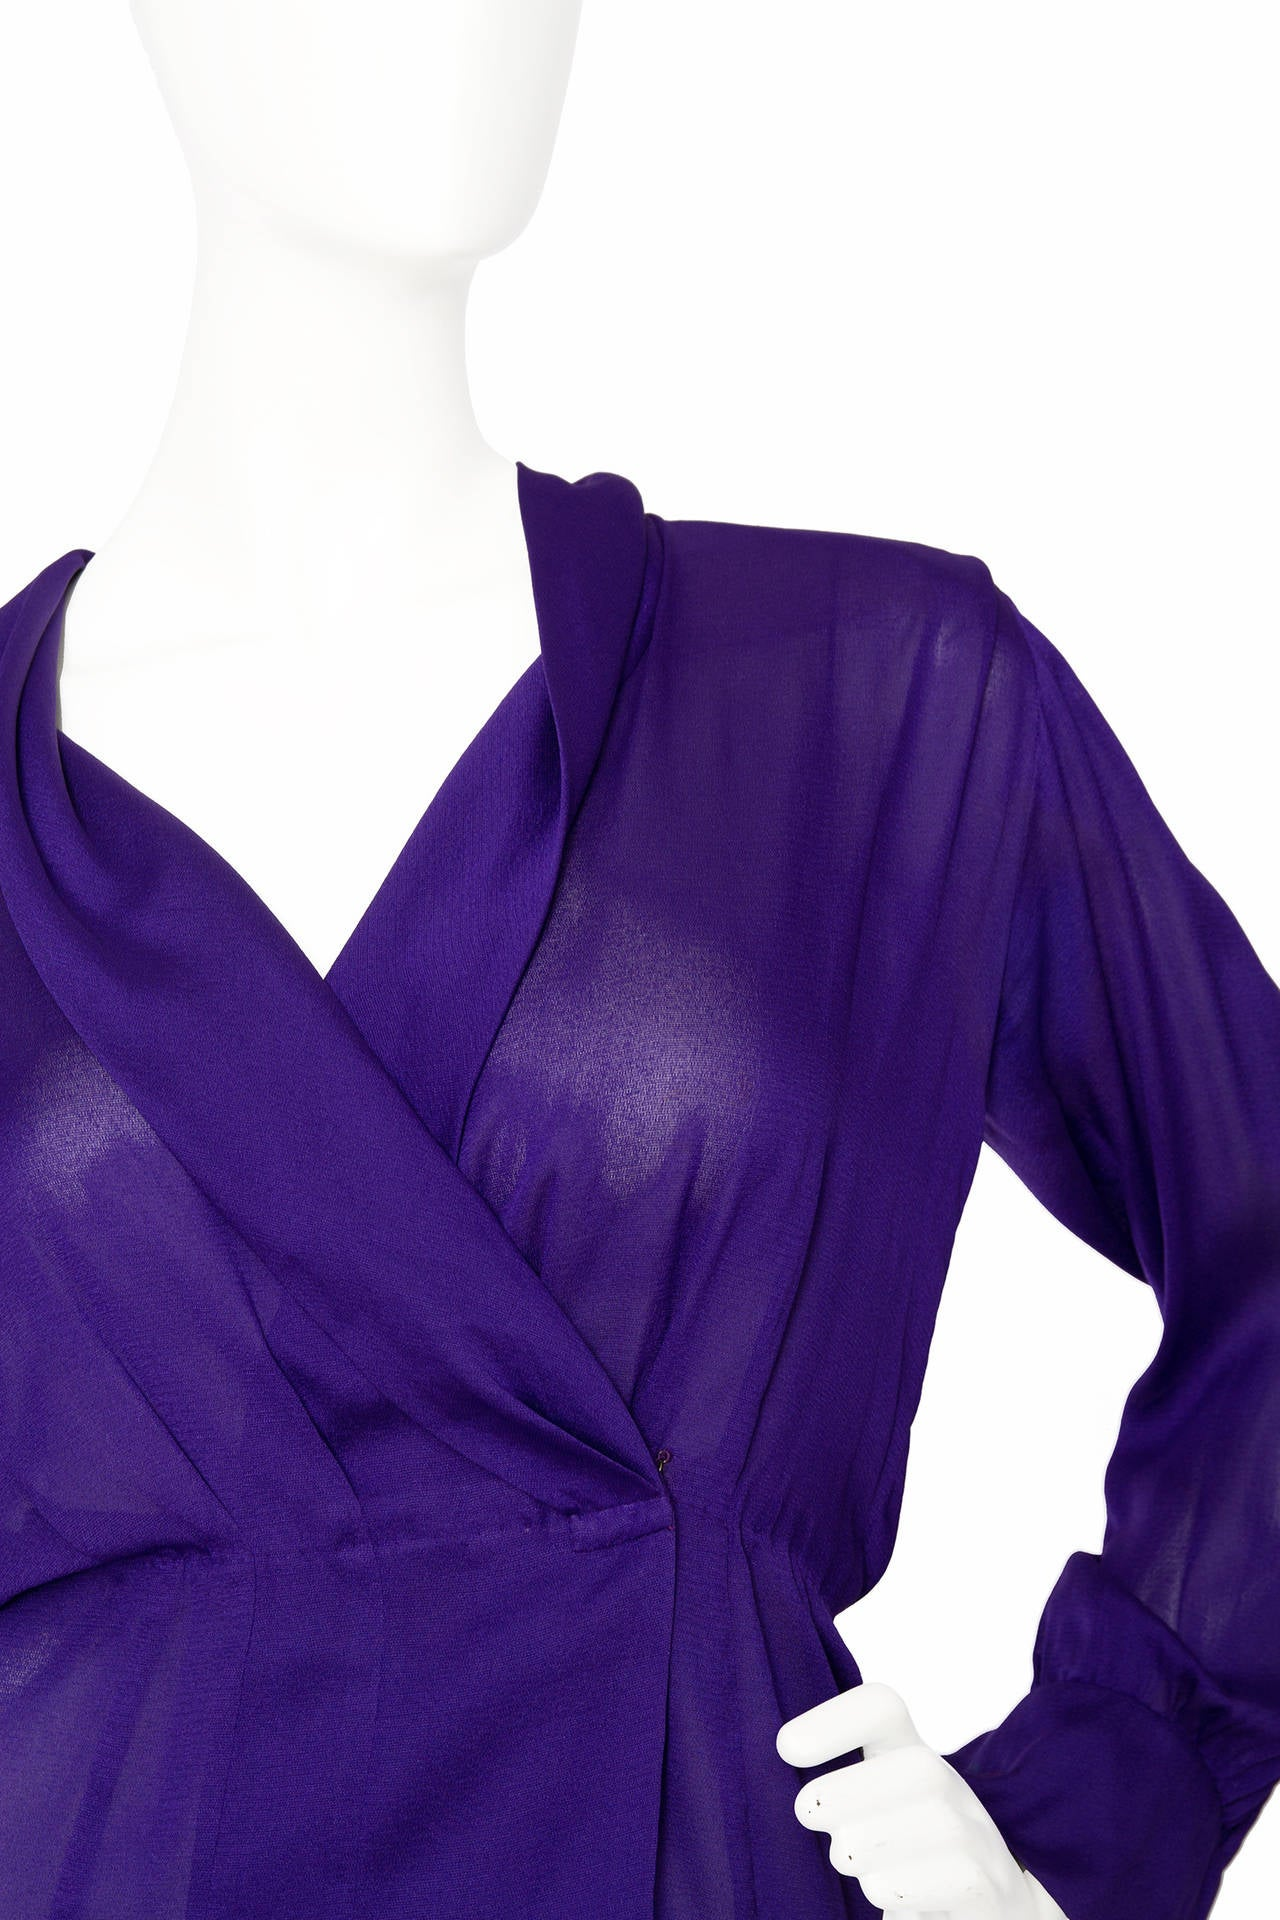 1980s Yves Saint Laurent Haute Couture Silk Jersey Blouse 8